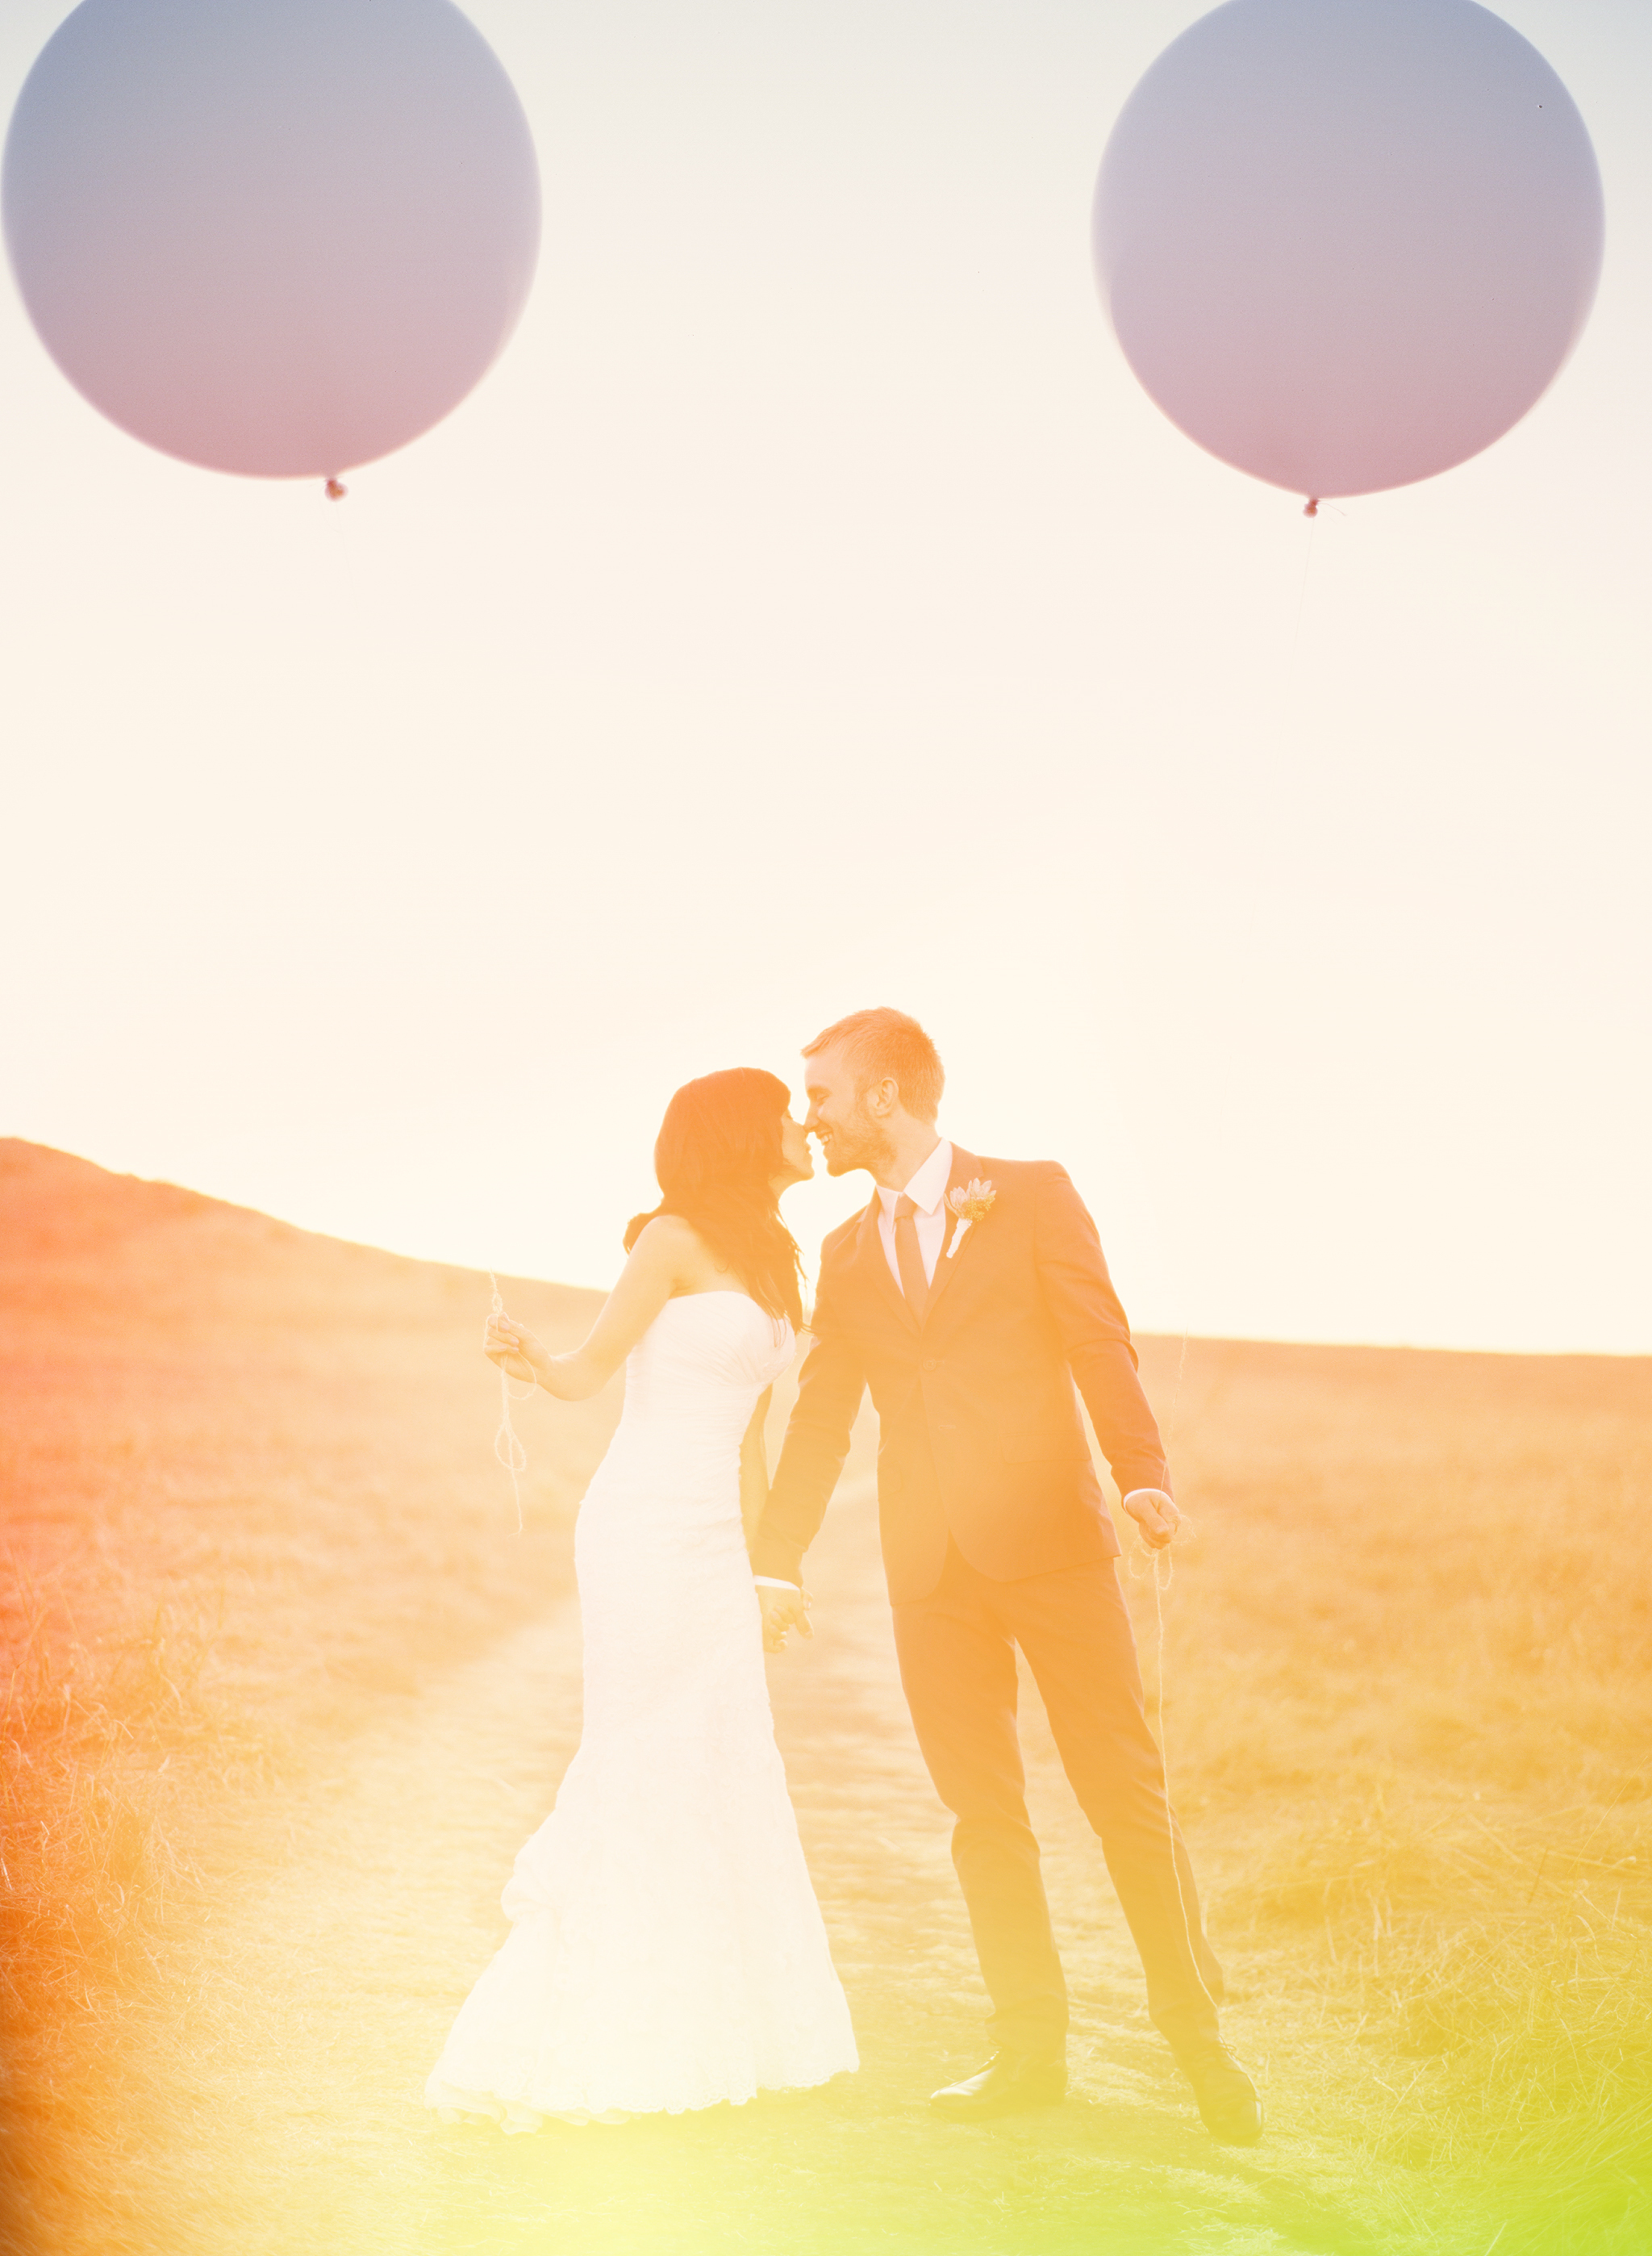 white, blue, black, Bride, Groom, Balloons, Large, Andrea eric